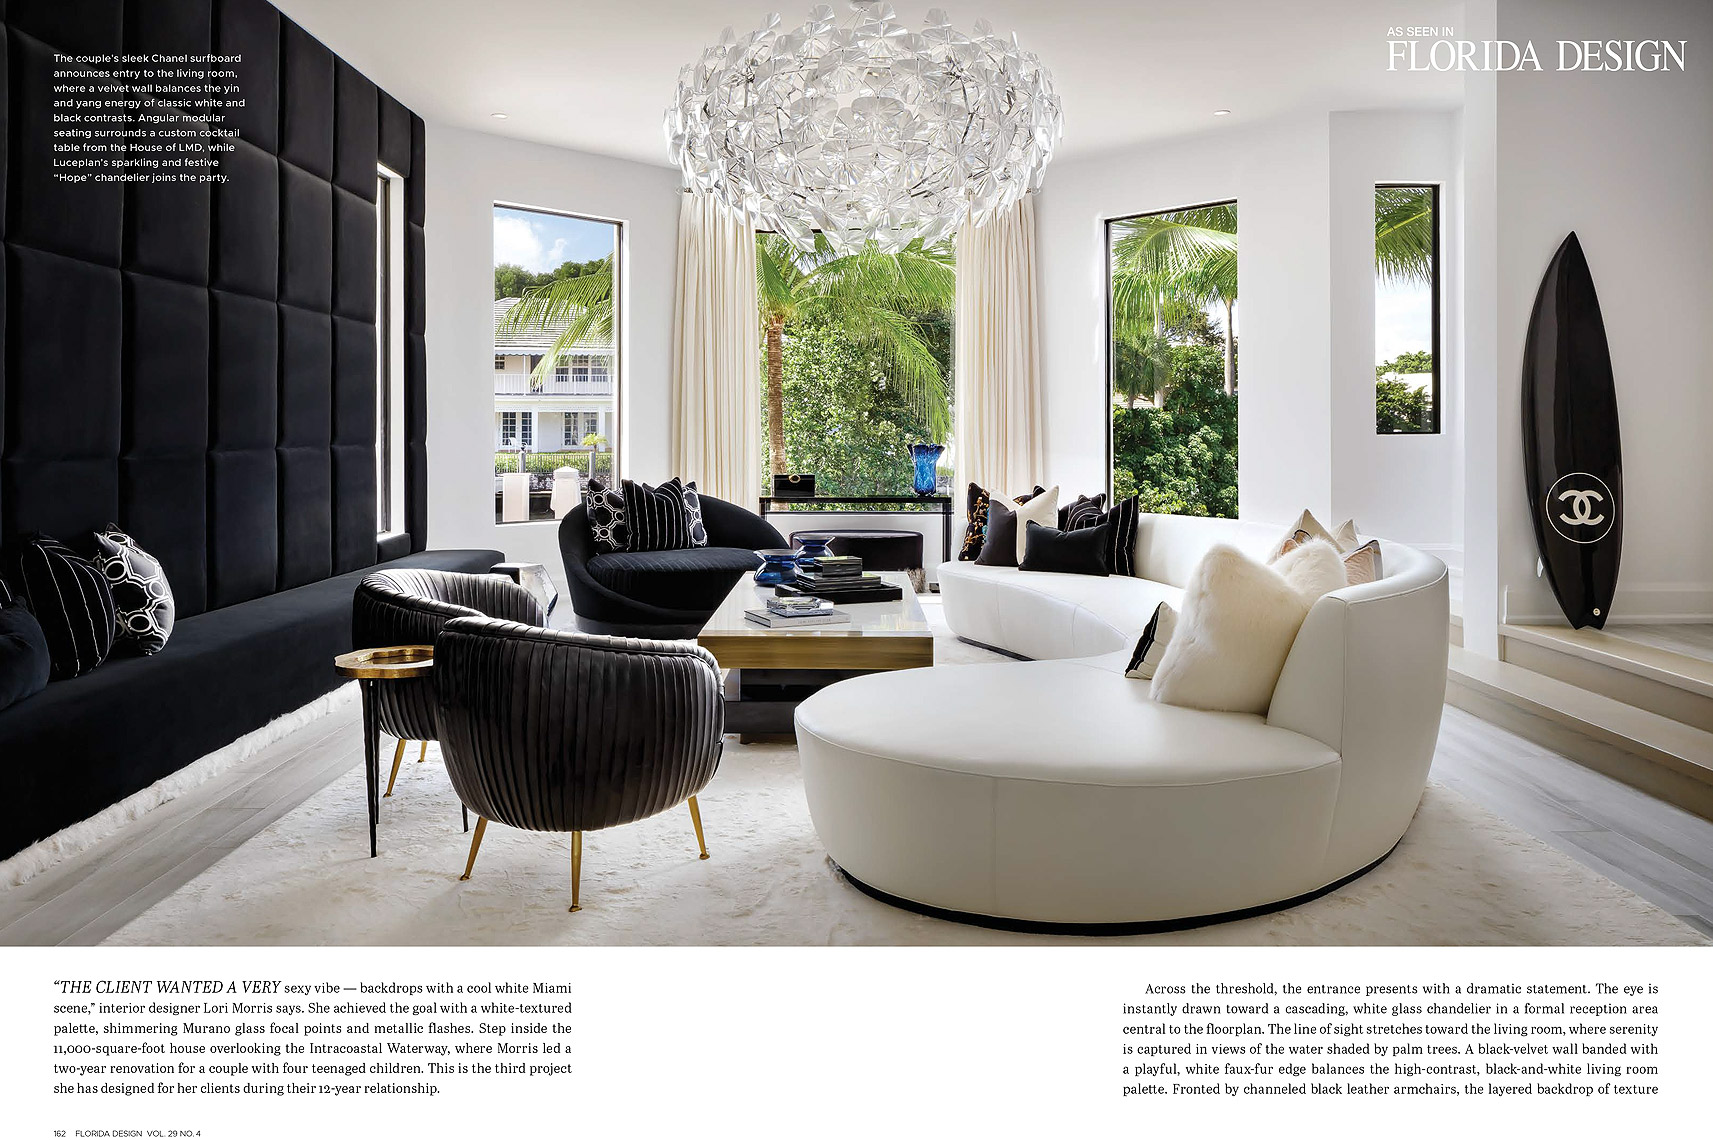 Florida Design Magazine - Lori Morris Design